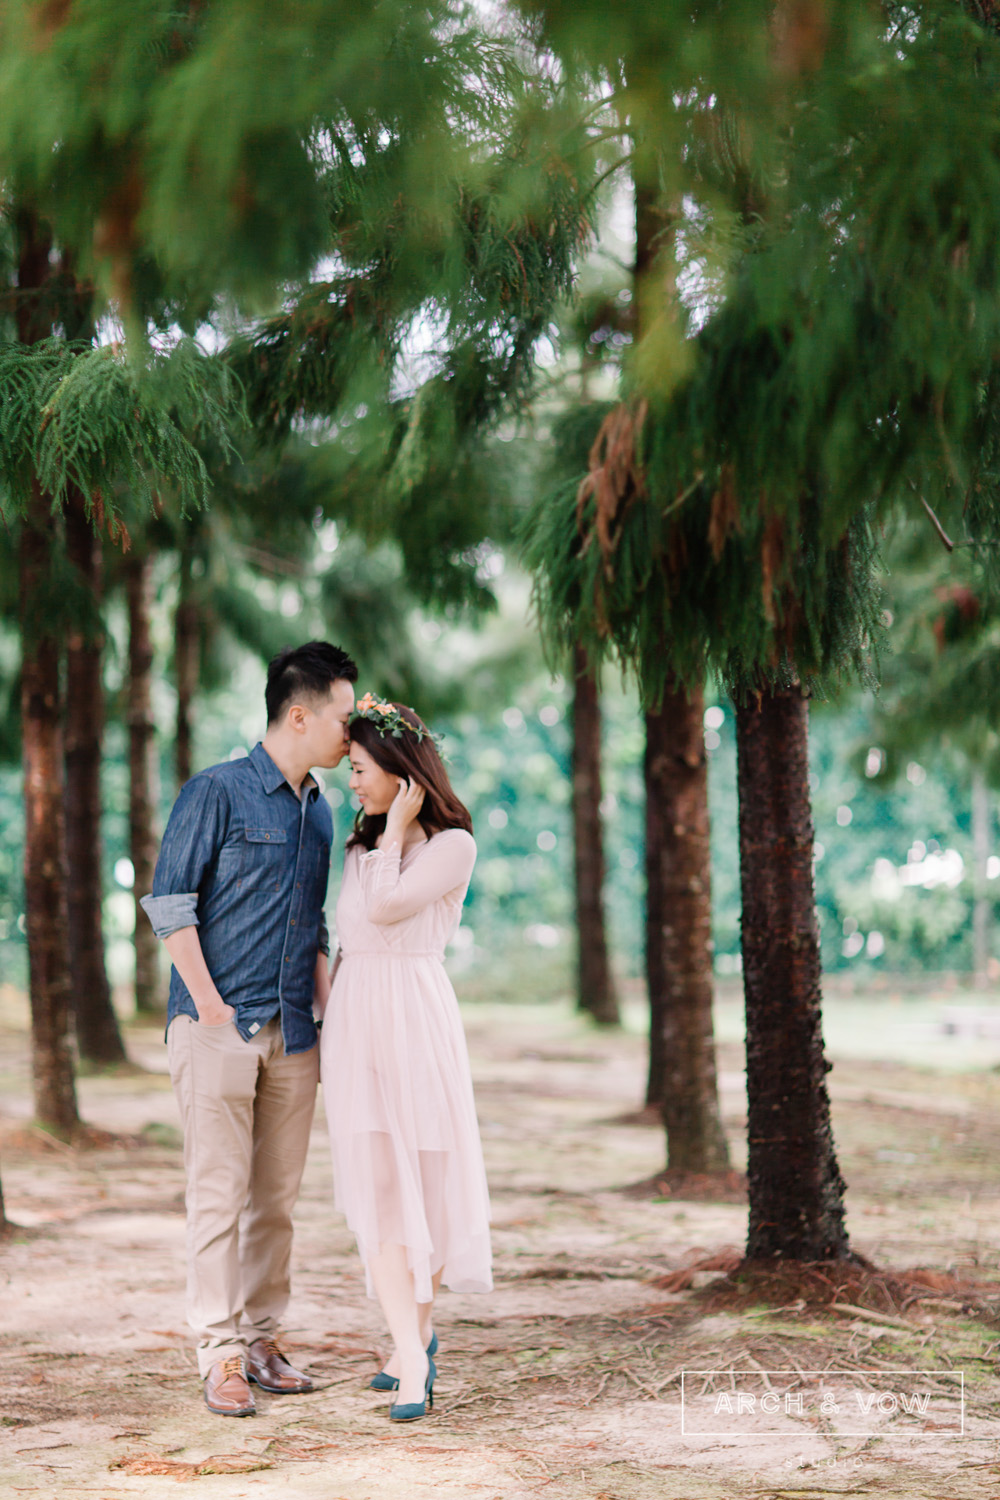 KC & Elly Prewed watermark-036.jpg